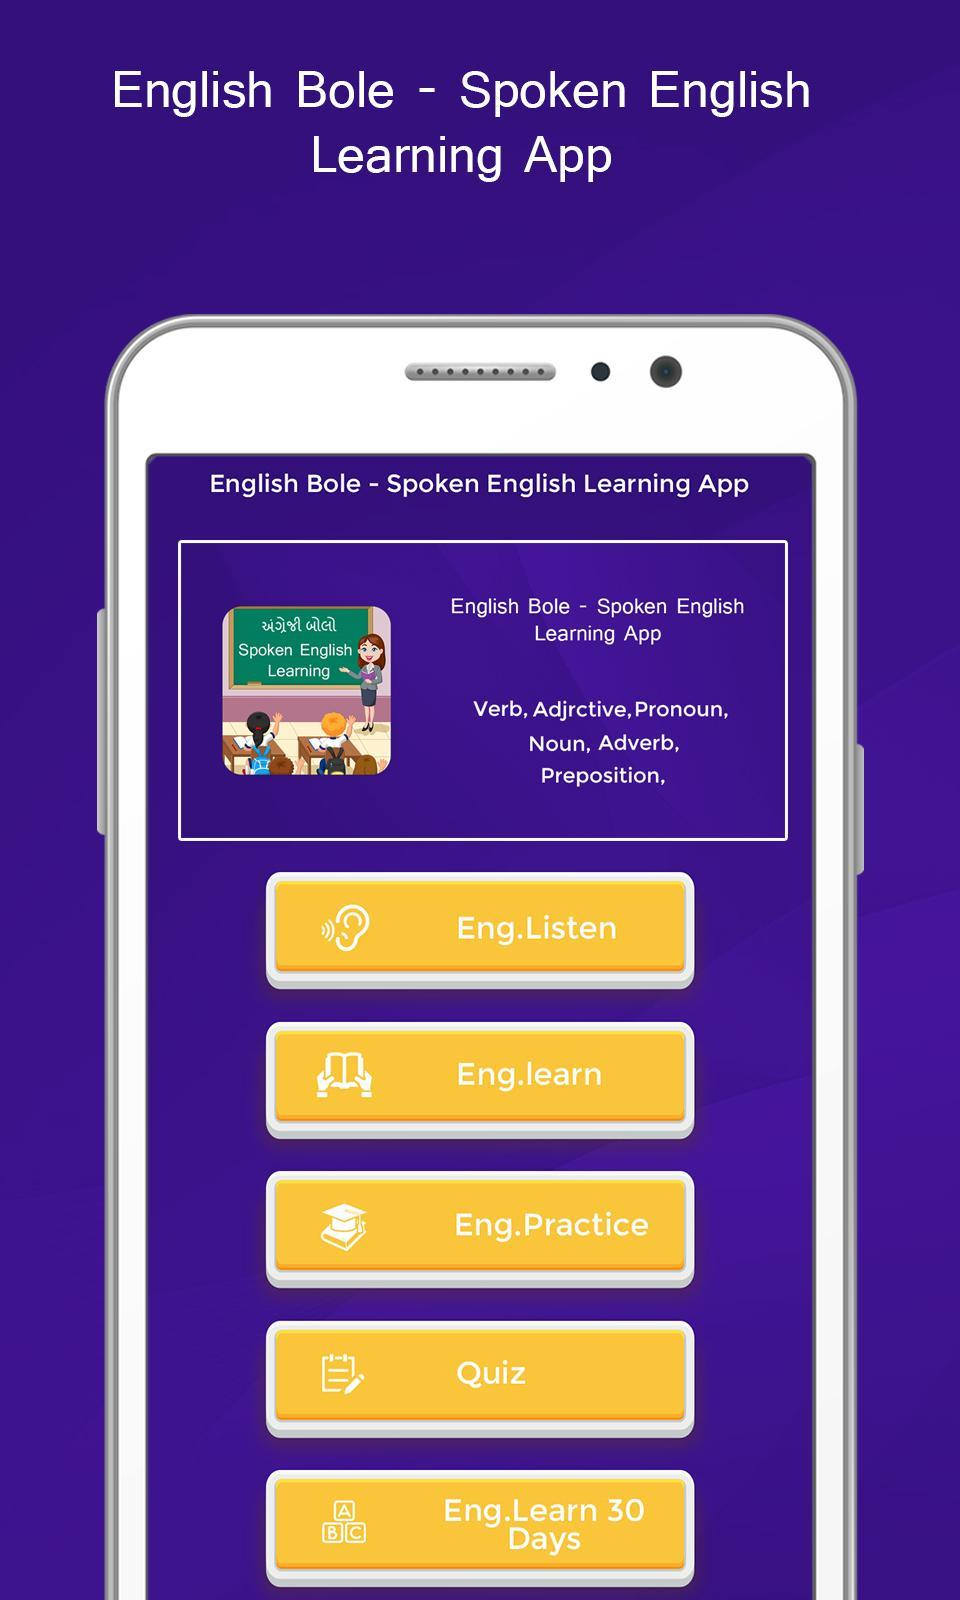 English Bole - Spoken English Learning App for Android - APK